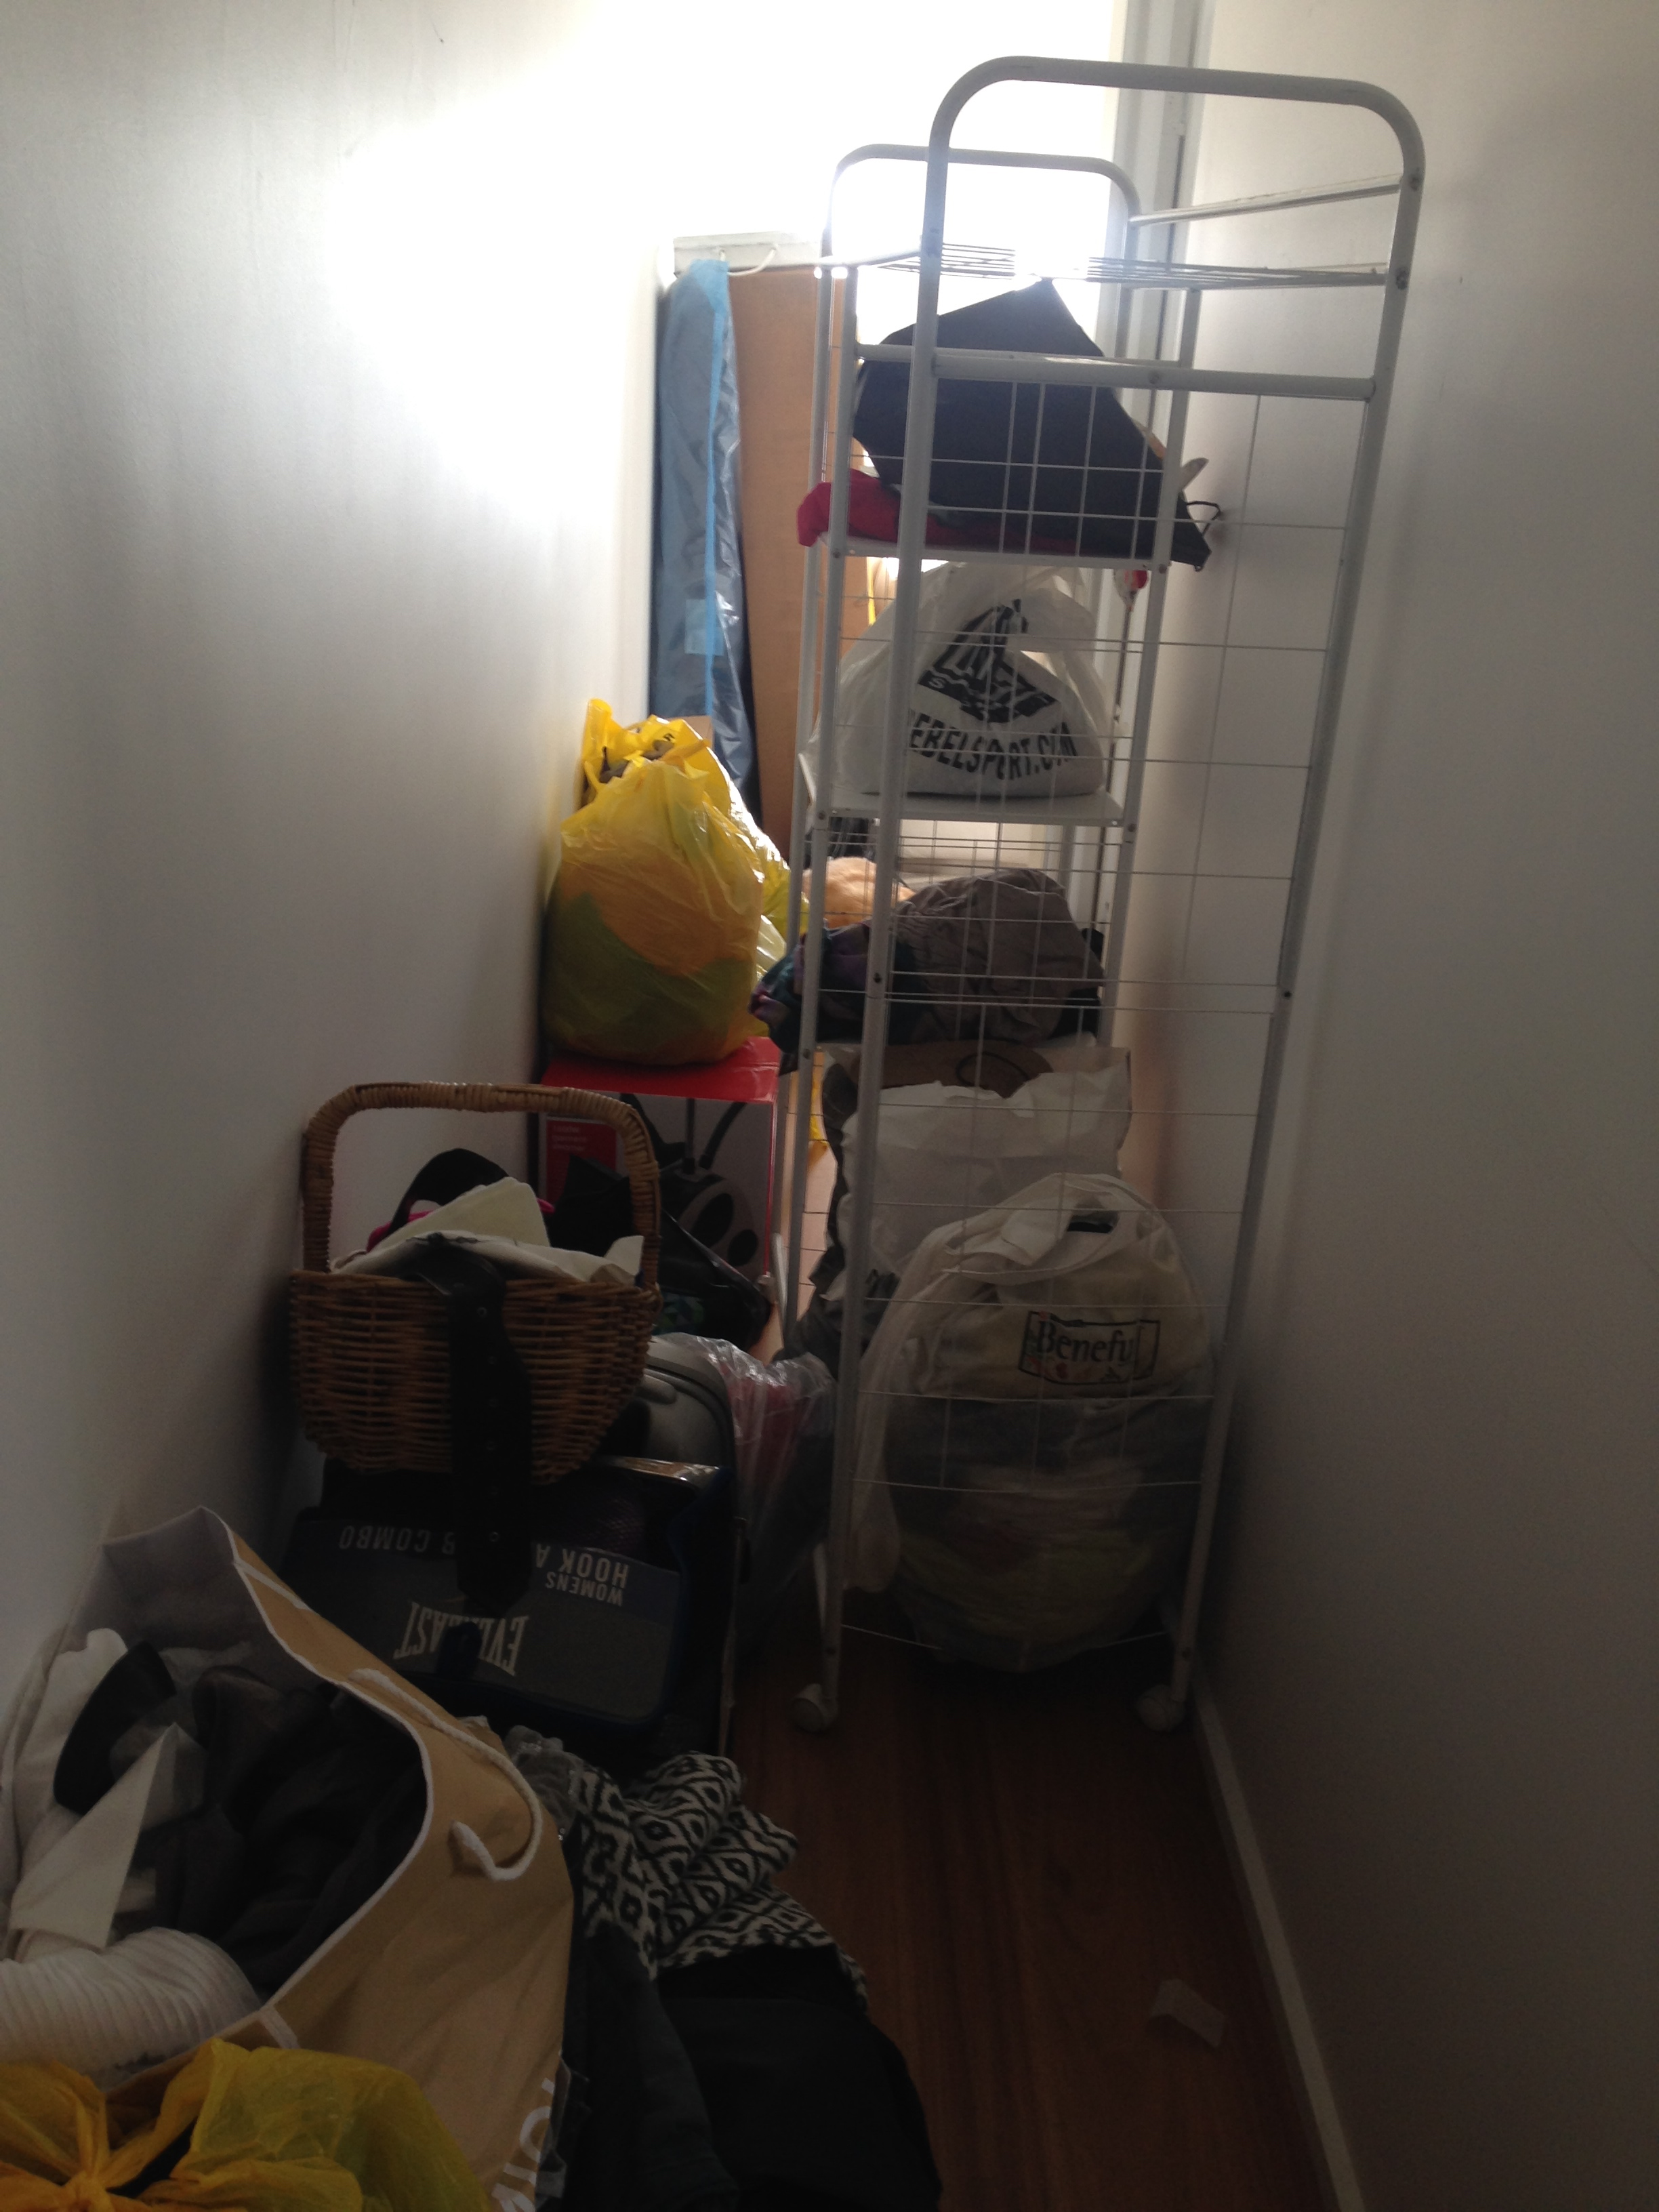 The hallway was also a storage space. Which made it challenging to move through the space.